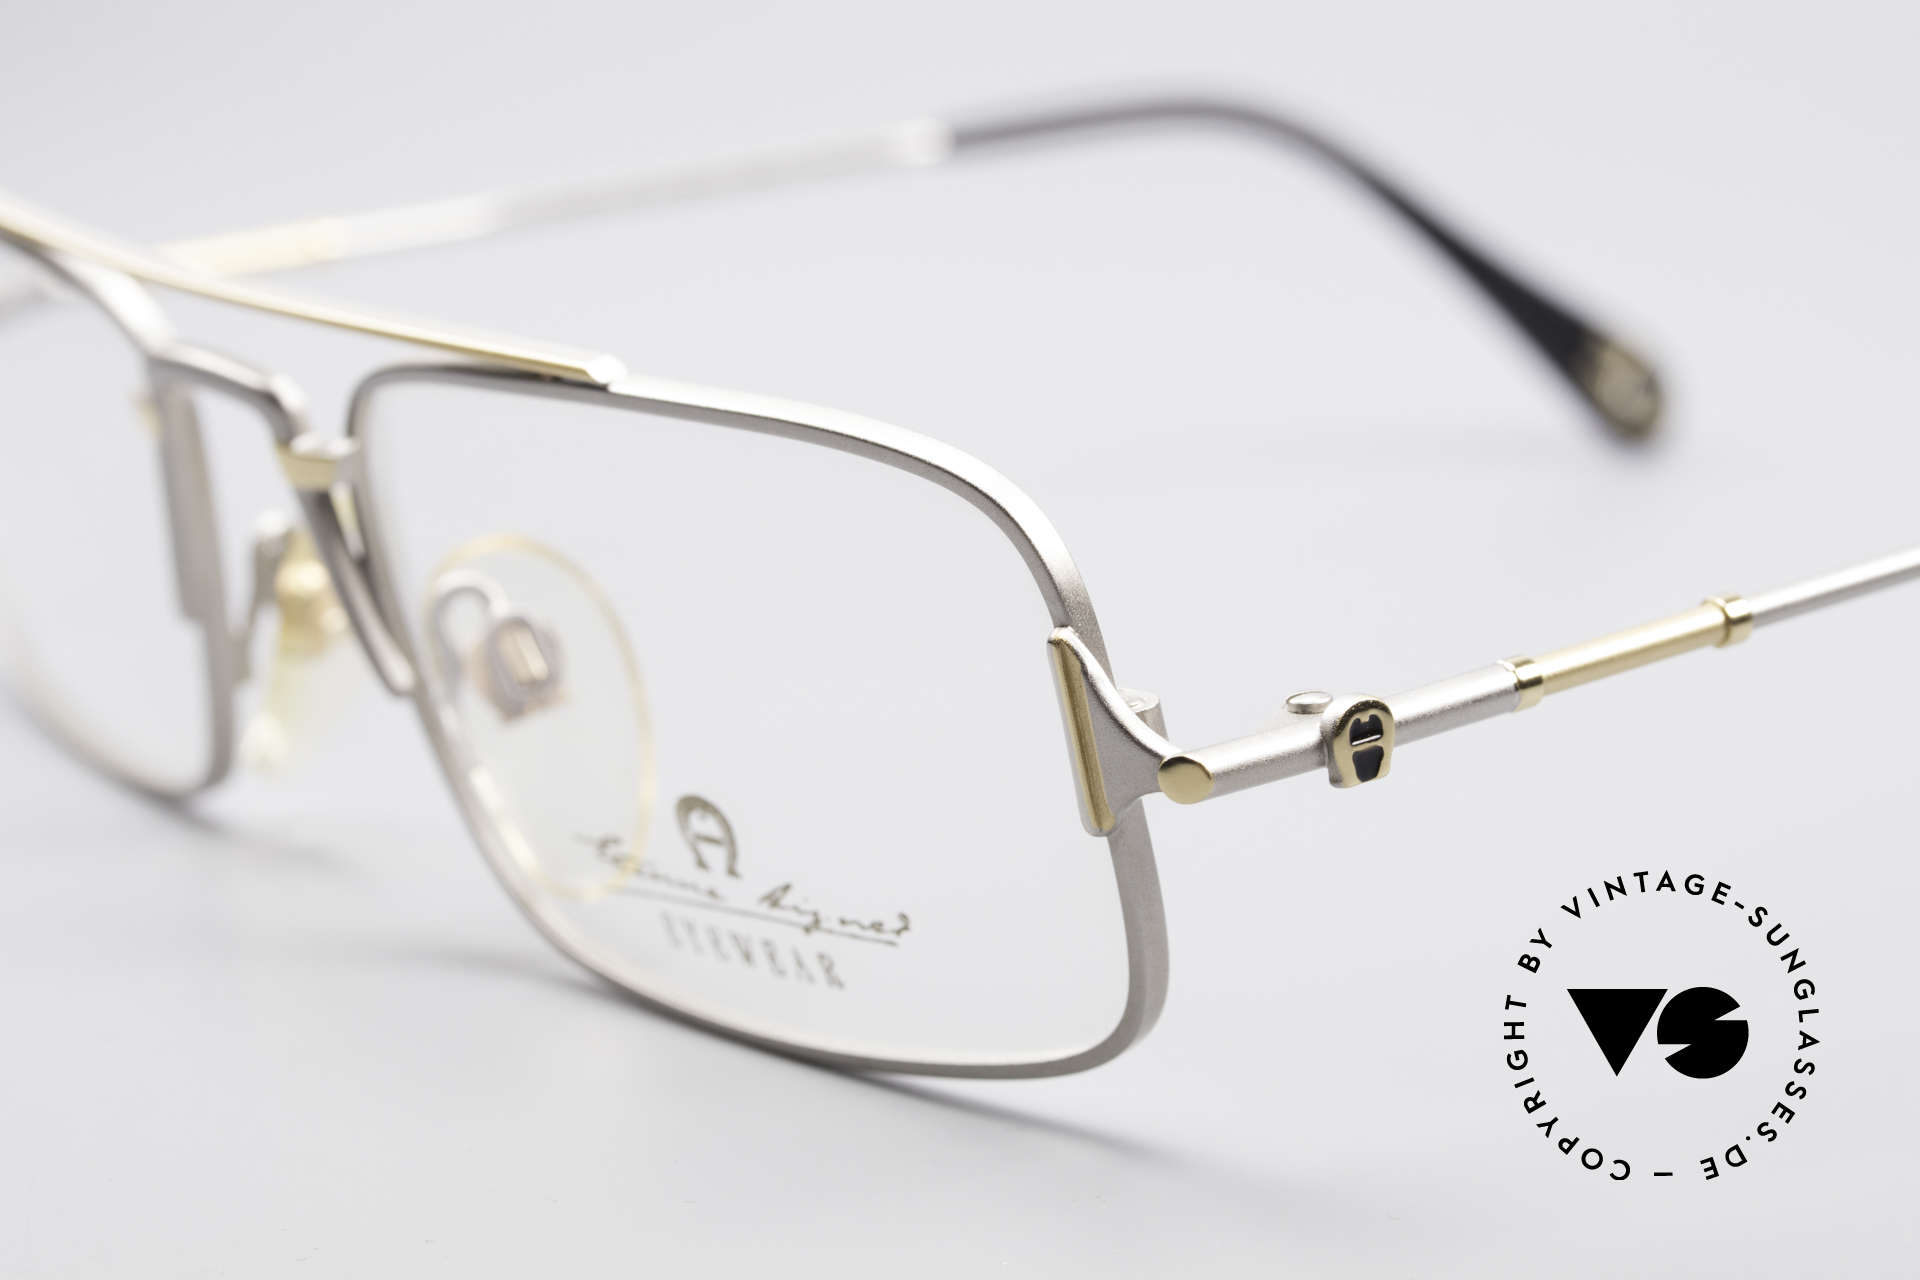 Aigner EA44 Rare 80's Vintage Eyeglasses, a 'MUST-HAVE' for all lovers of quality and fashion, Made for Men